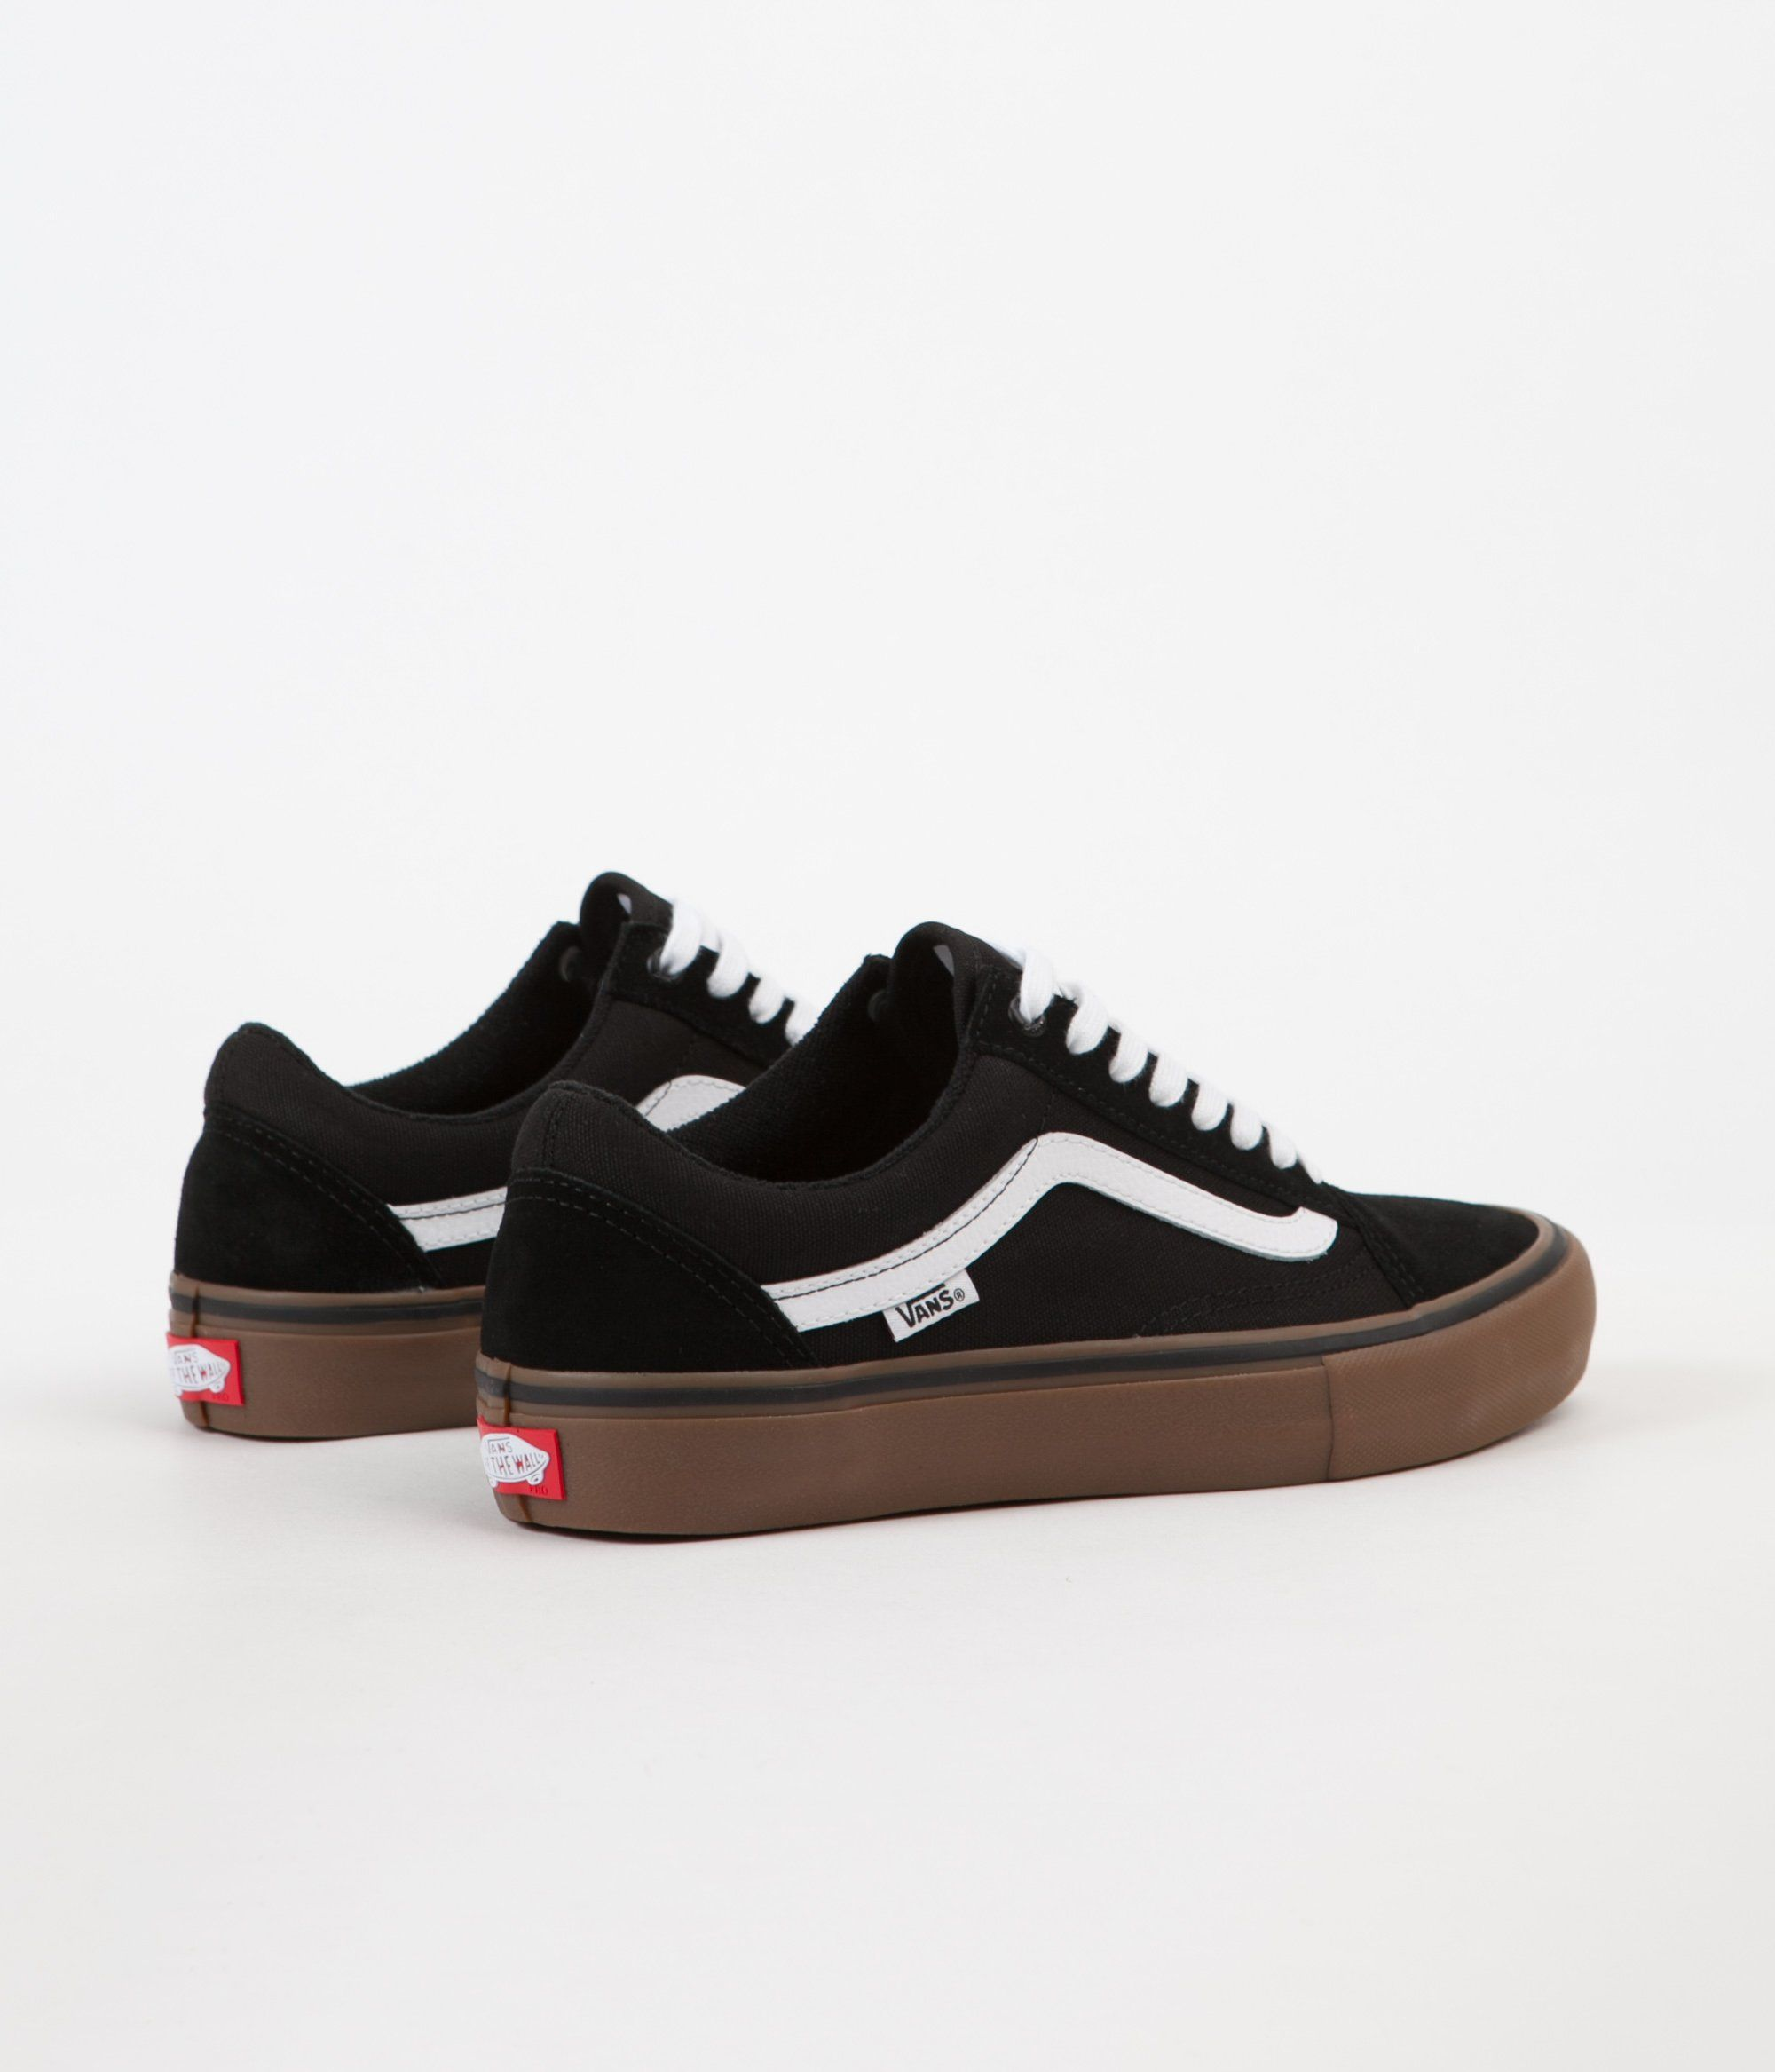 Vans Old Skool Pro Shoes - Black   White   Medium Gum  11892175cf